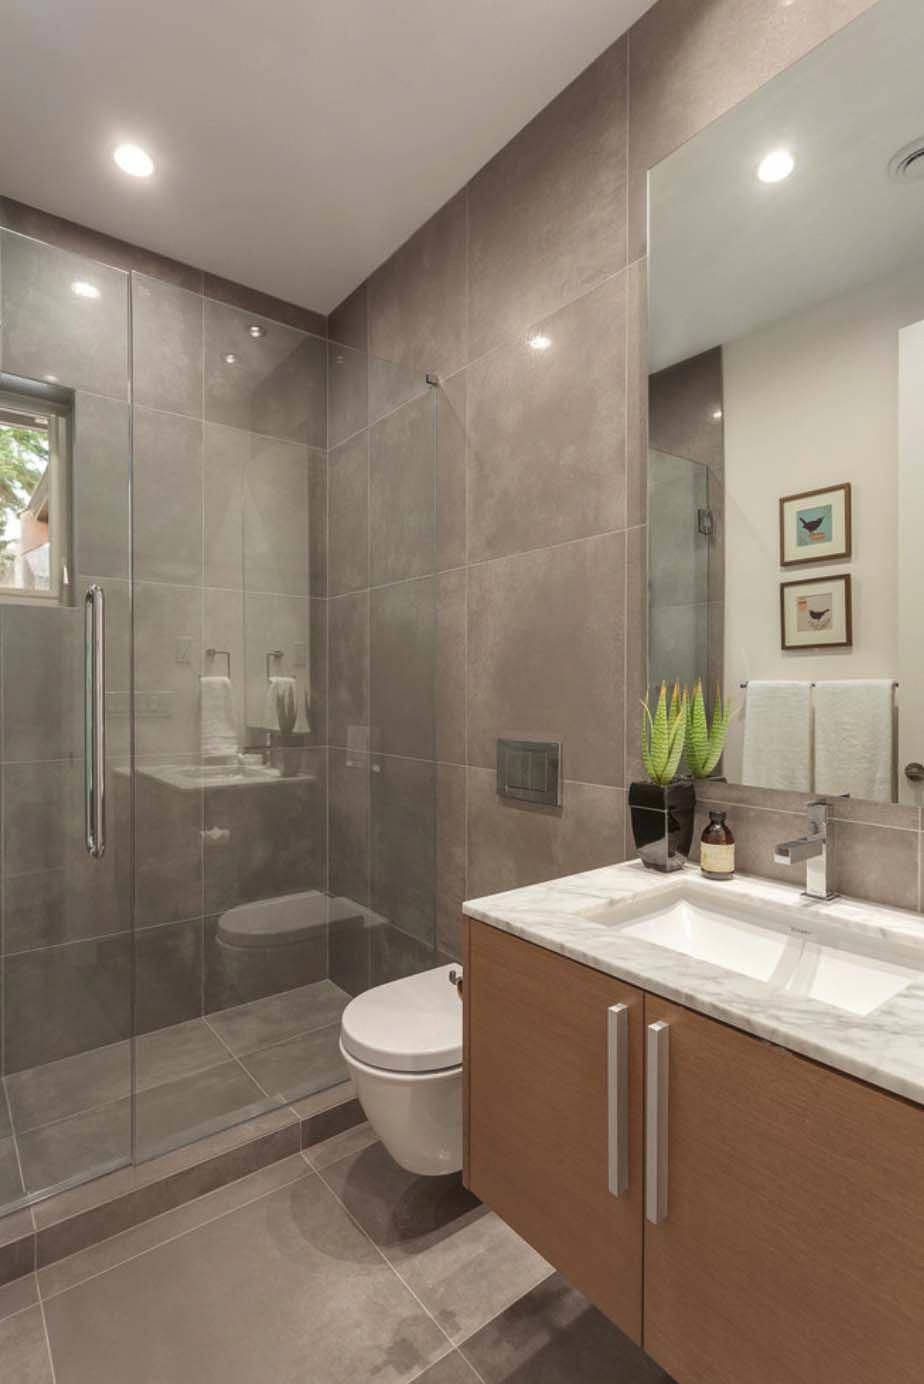 Kleine ensuite badezimmerdesignideen lightflooded contemporary style residence in west vancouver